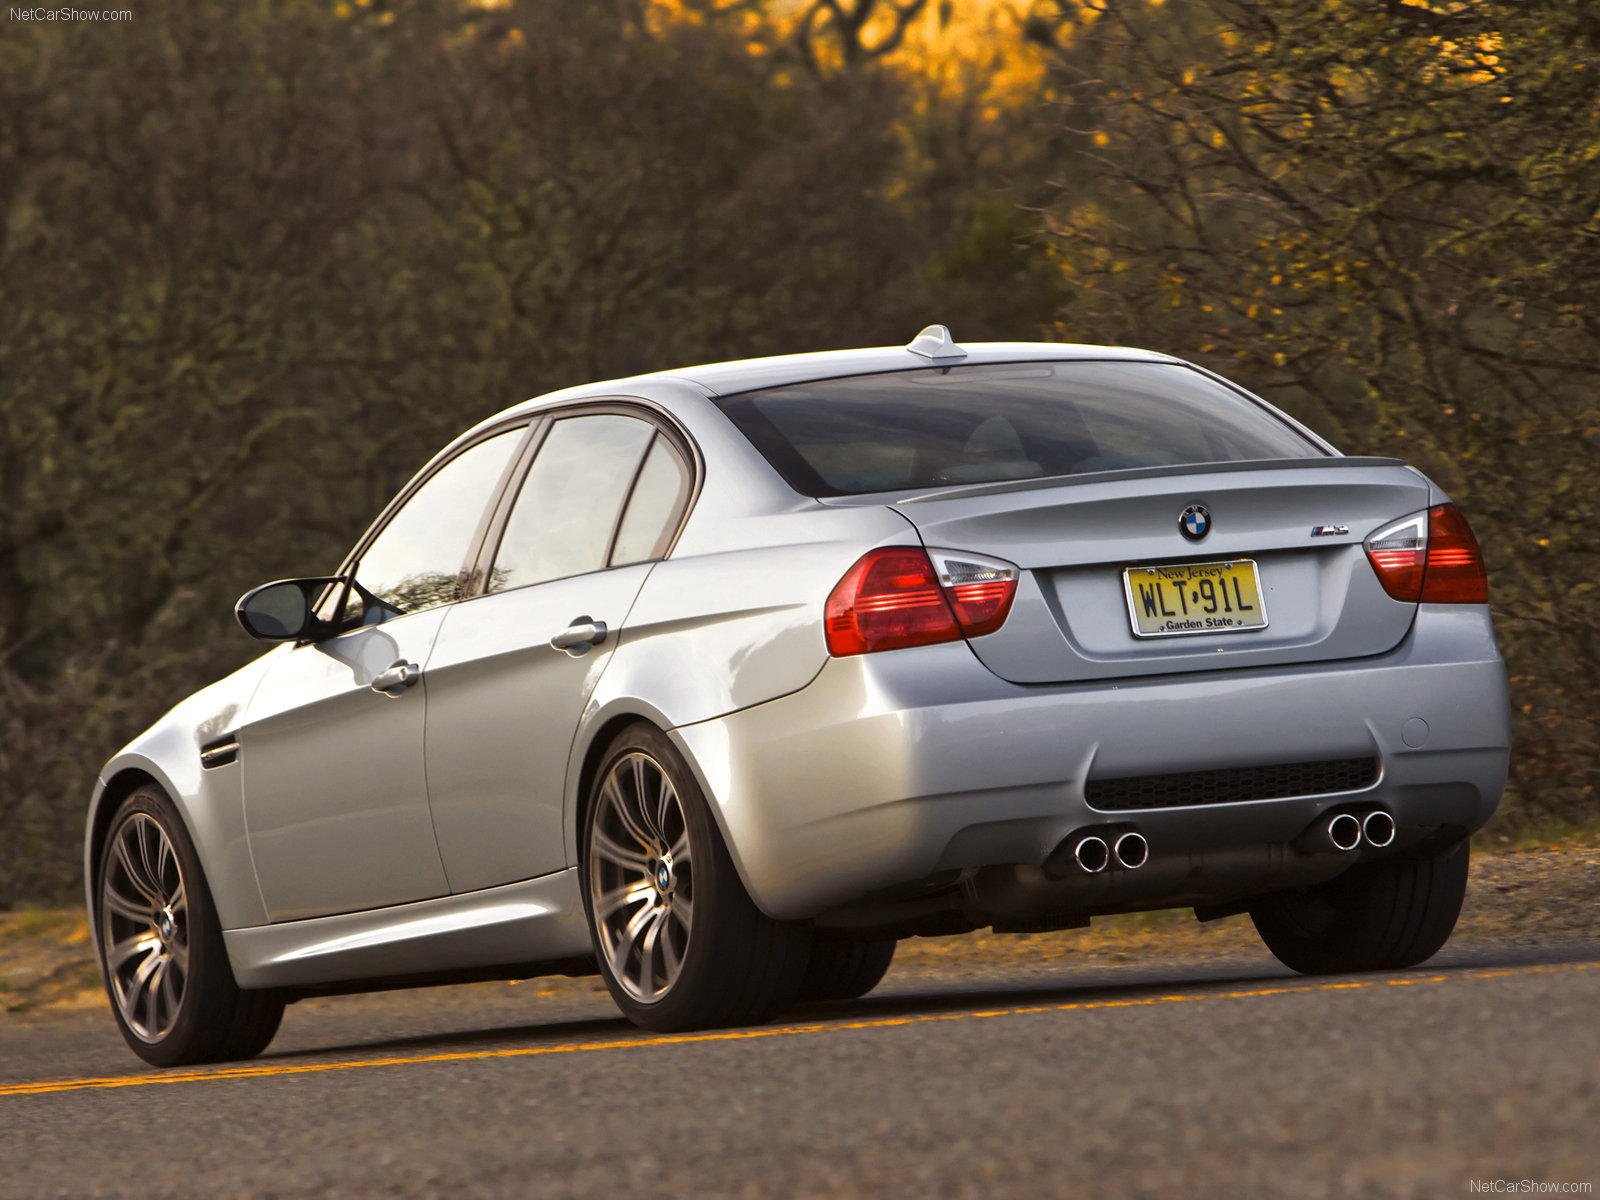 bmw m3 e90 sedan photos photo gallery page 2. Black Bedroom Furniture Sets. Home Design Ideas